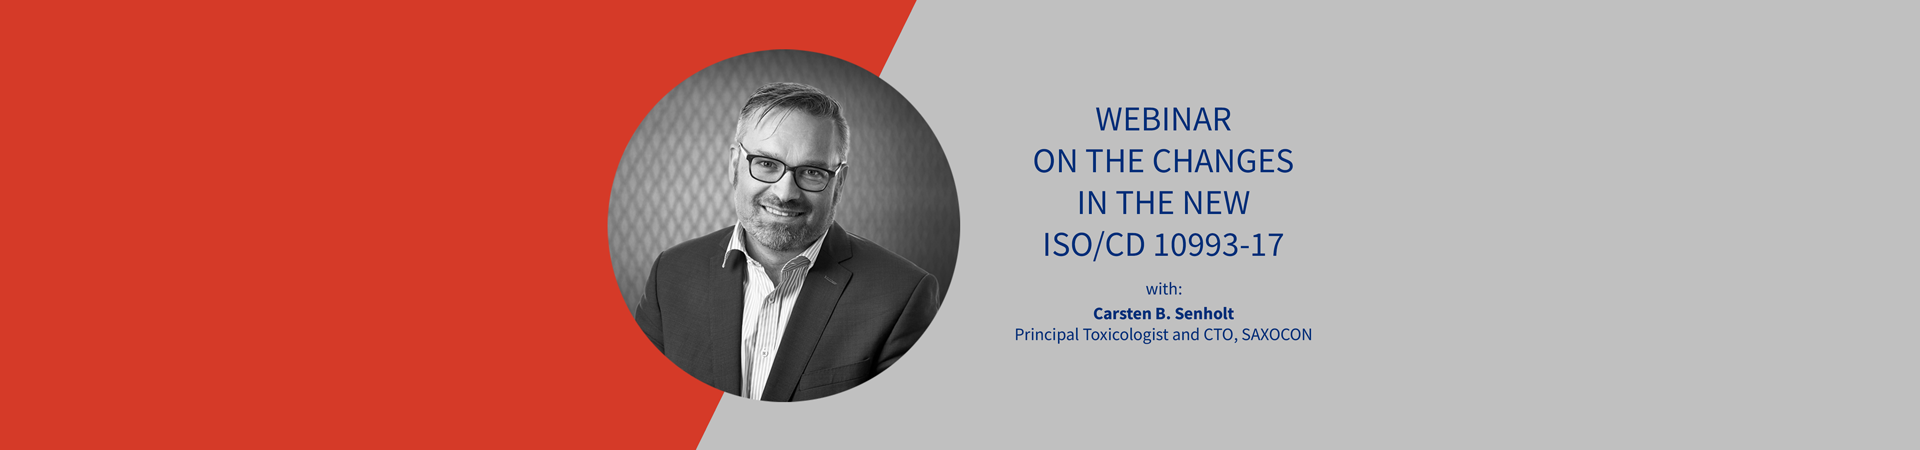 Webinar on the new changes in the new ISO/CD 10993-17